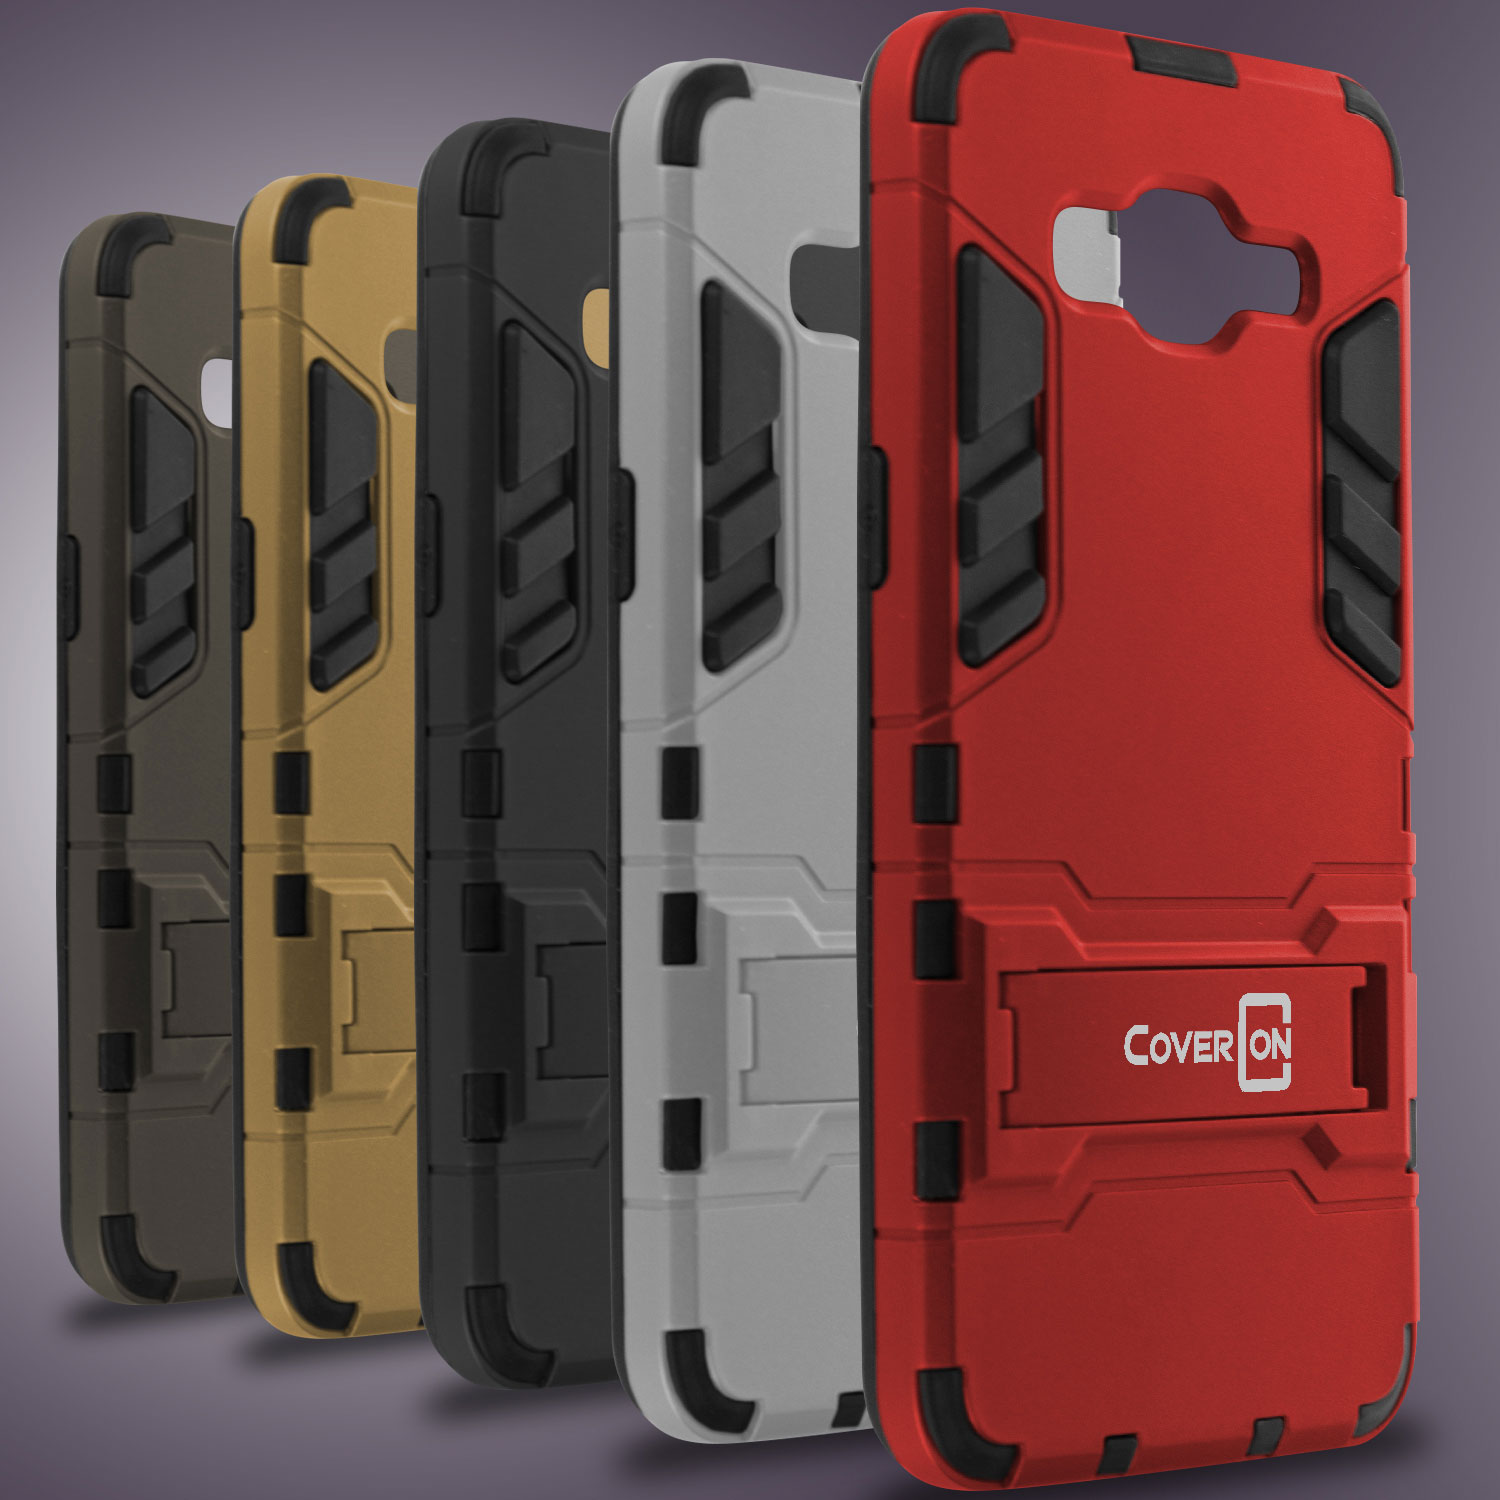 Details about For Samsung Galaxy Grand Prime Case Hard Armor Slim Kickstand Protective Cover